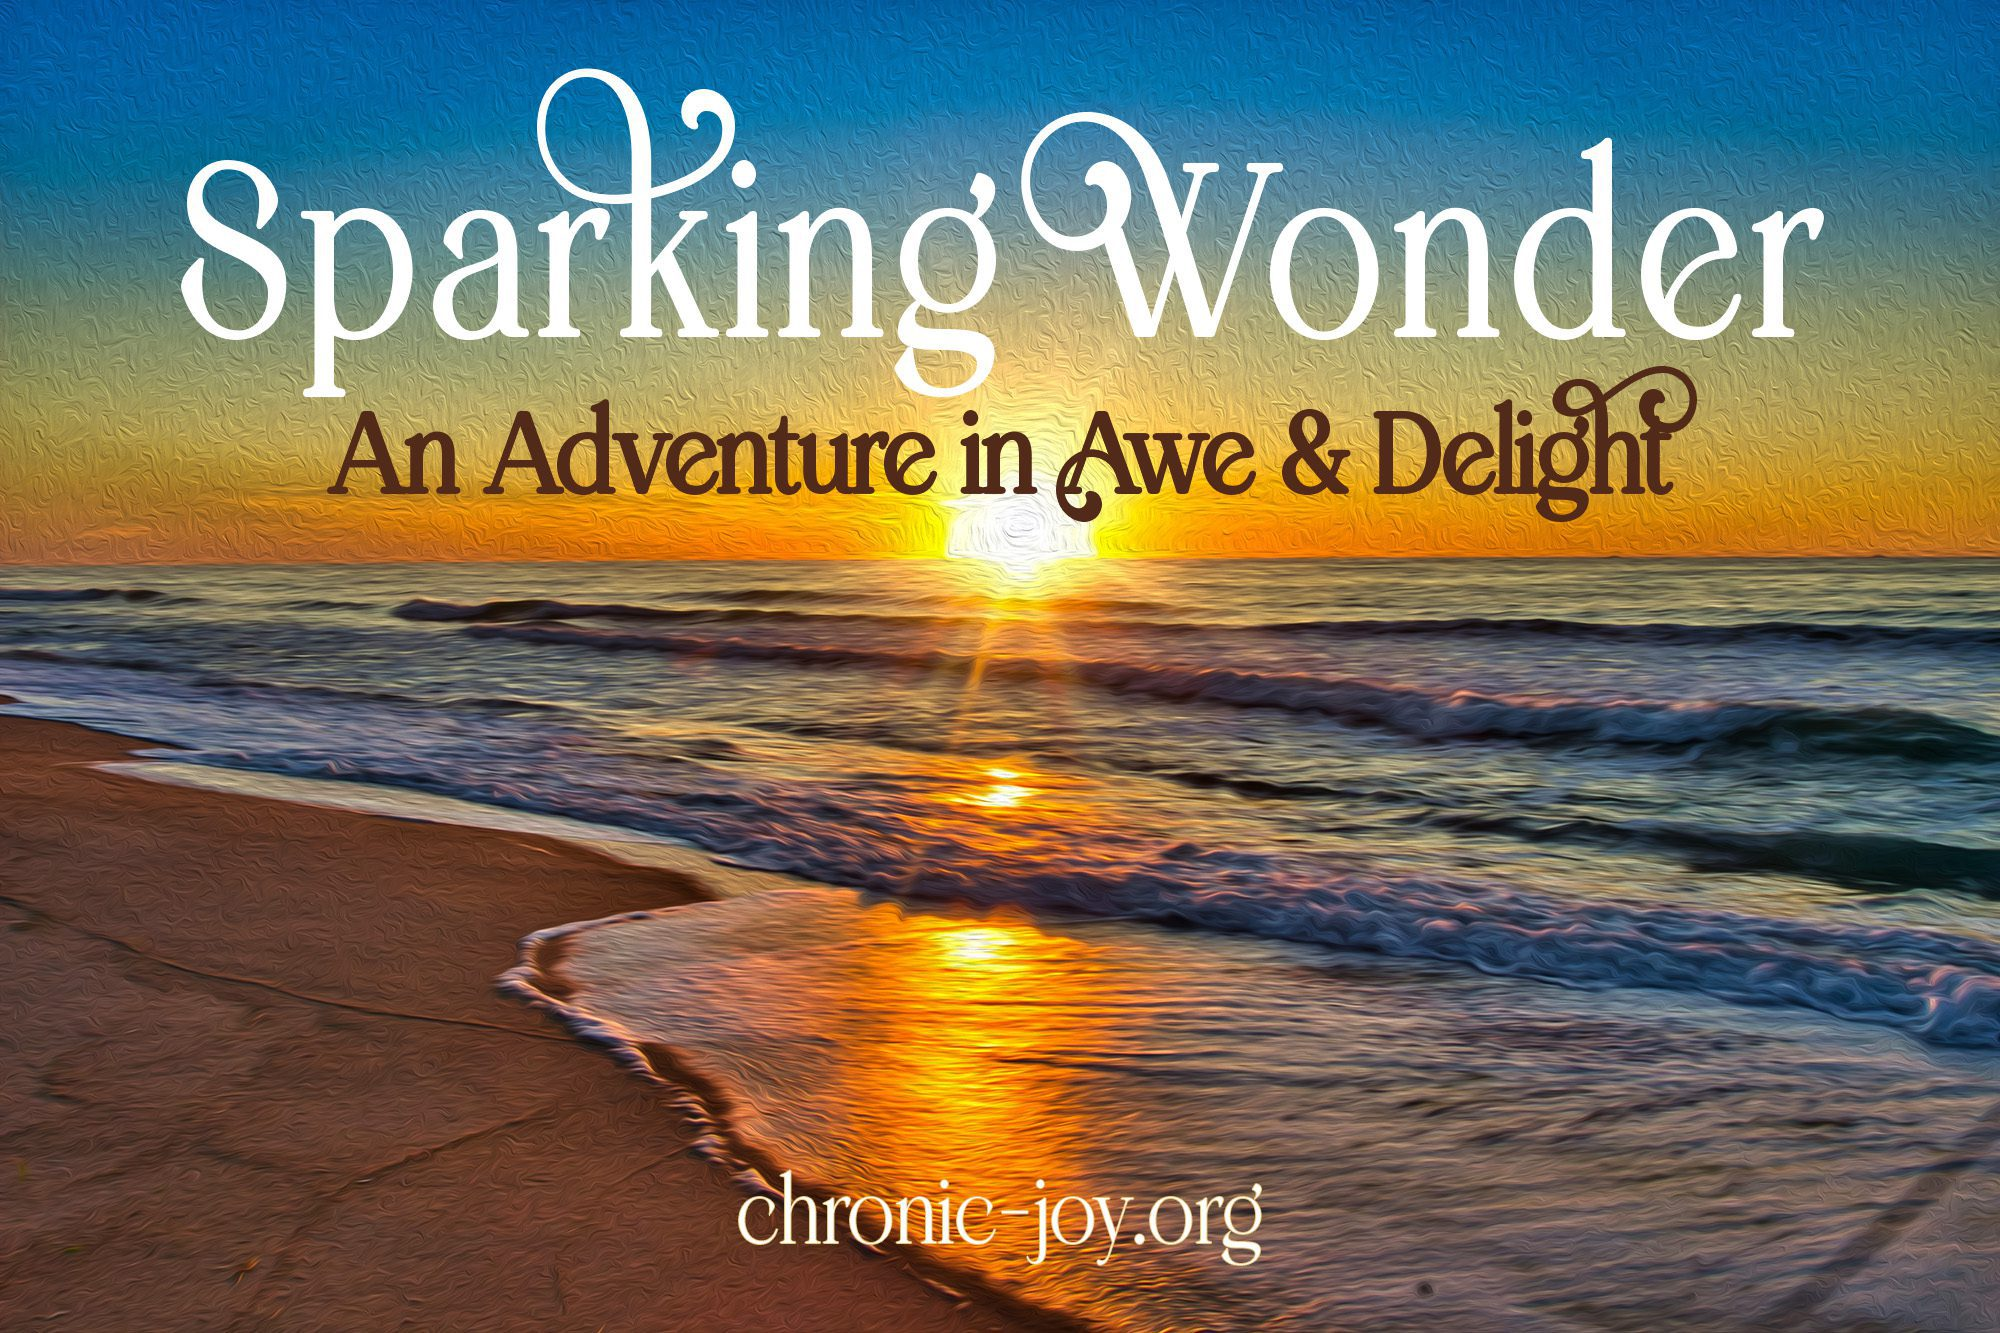 Sparking Wonder: An Adventure in Awe & Delight